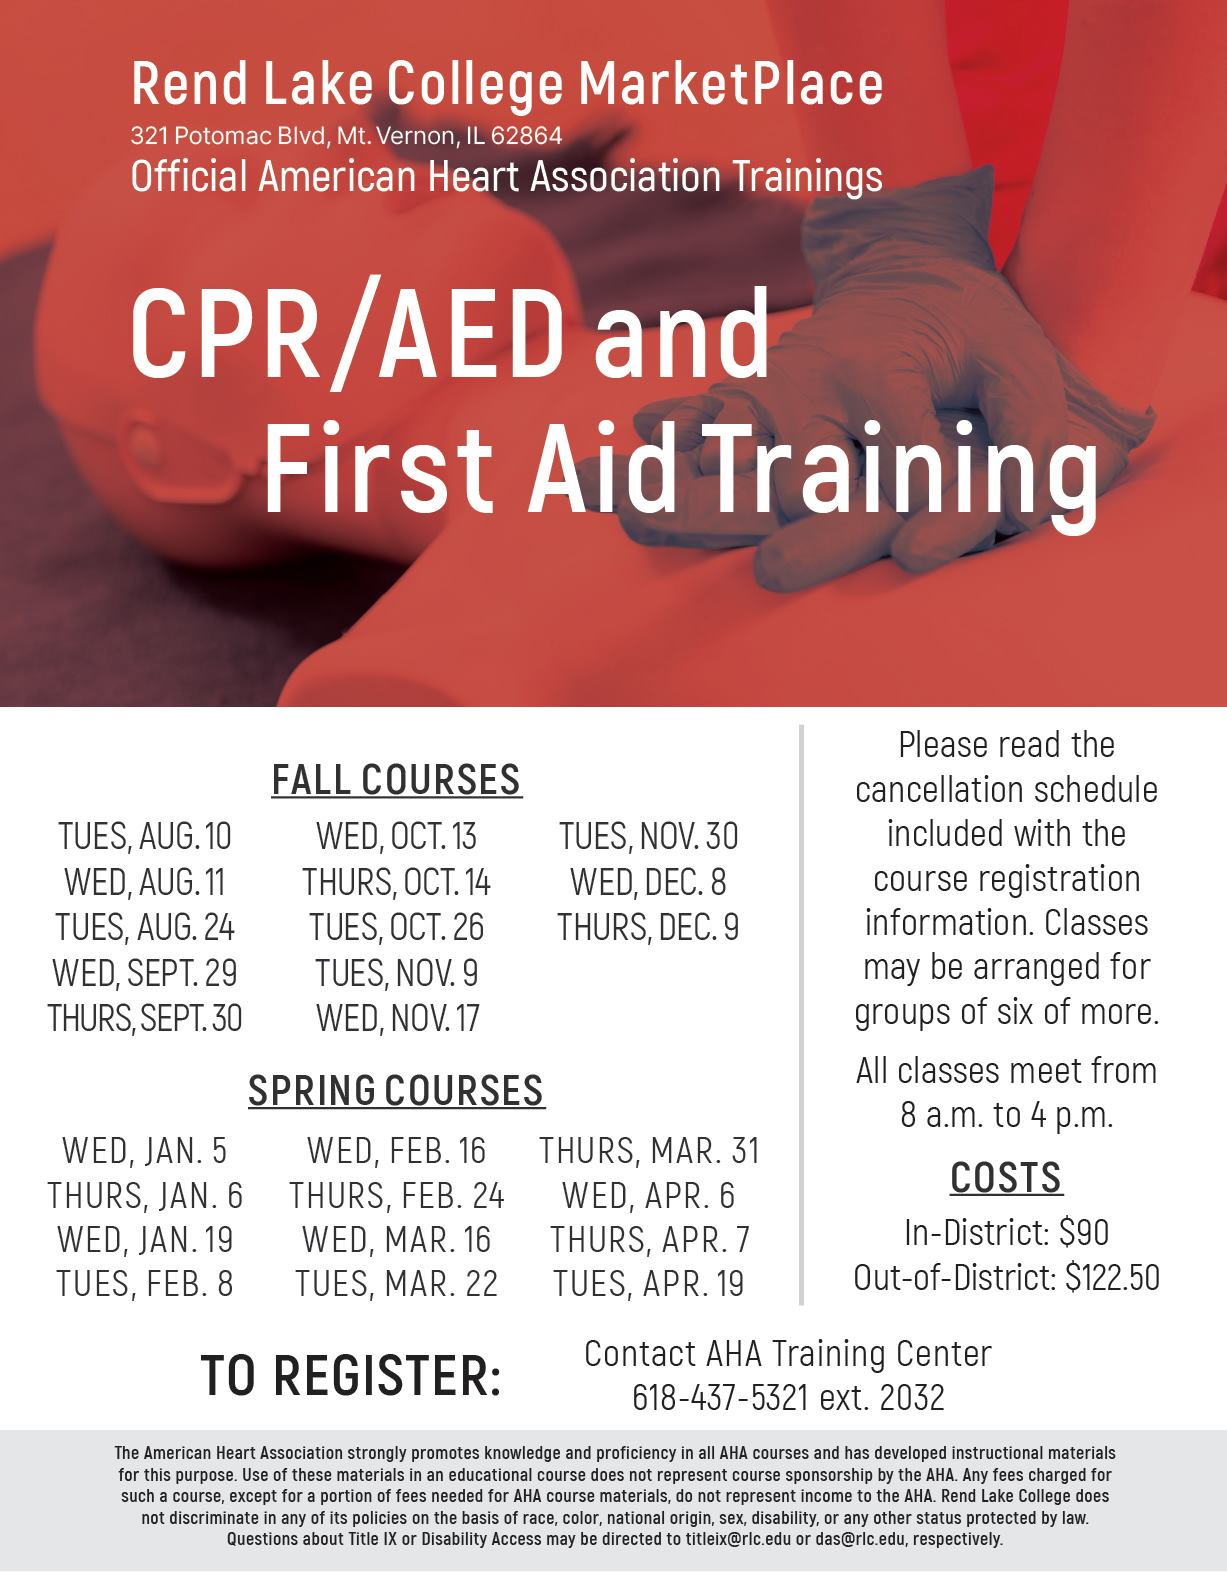 American Heart Association CPR/AED & First Aid Training